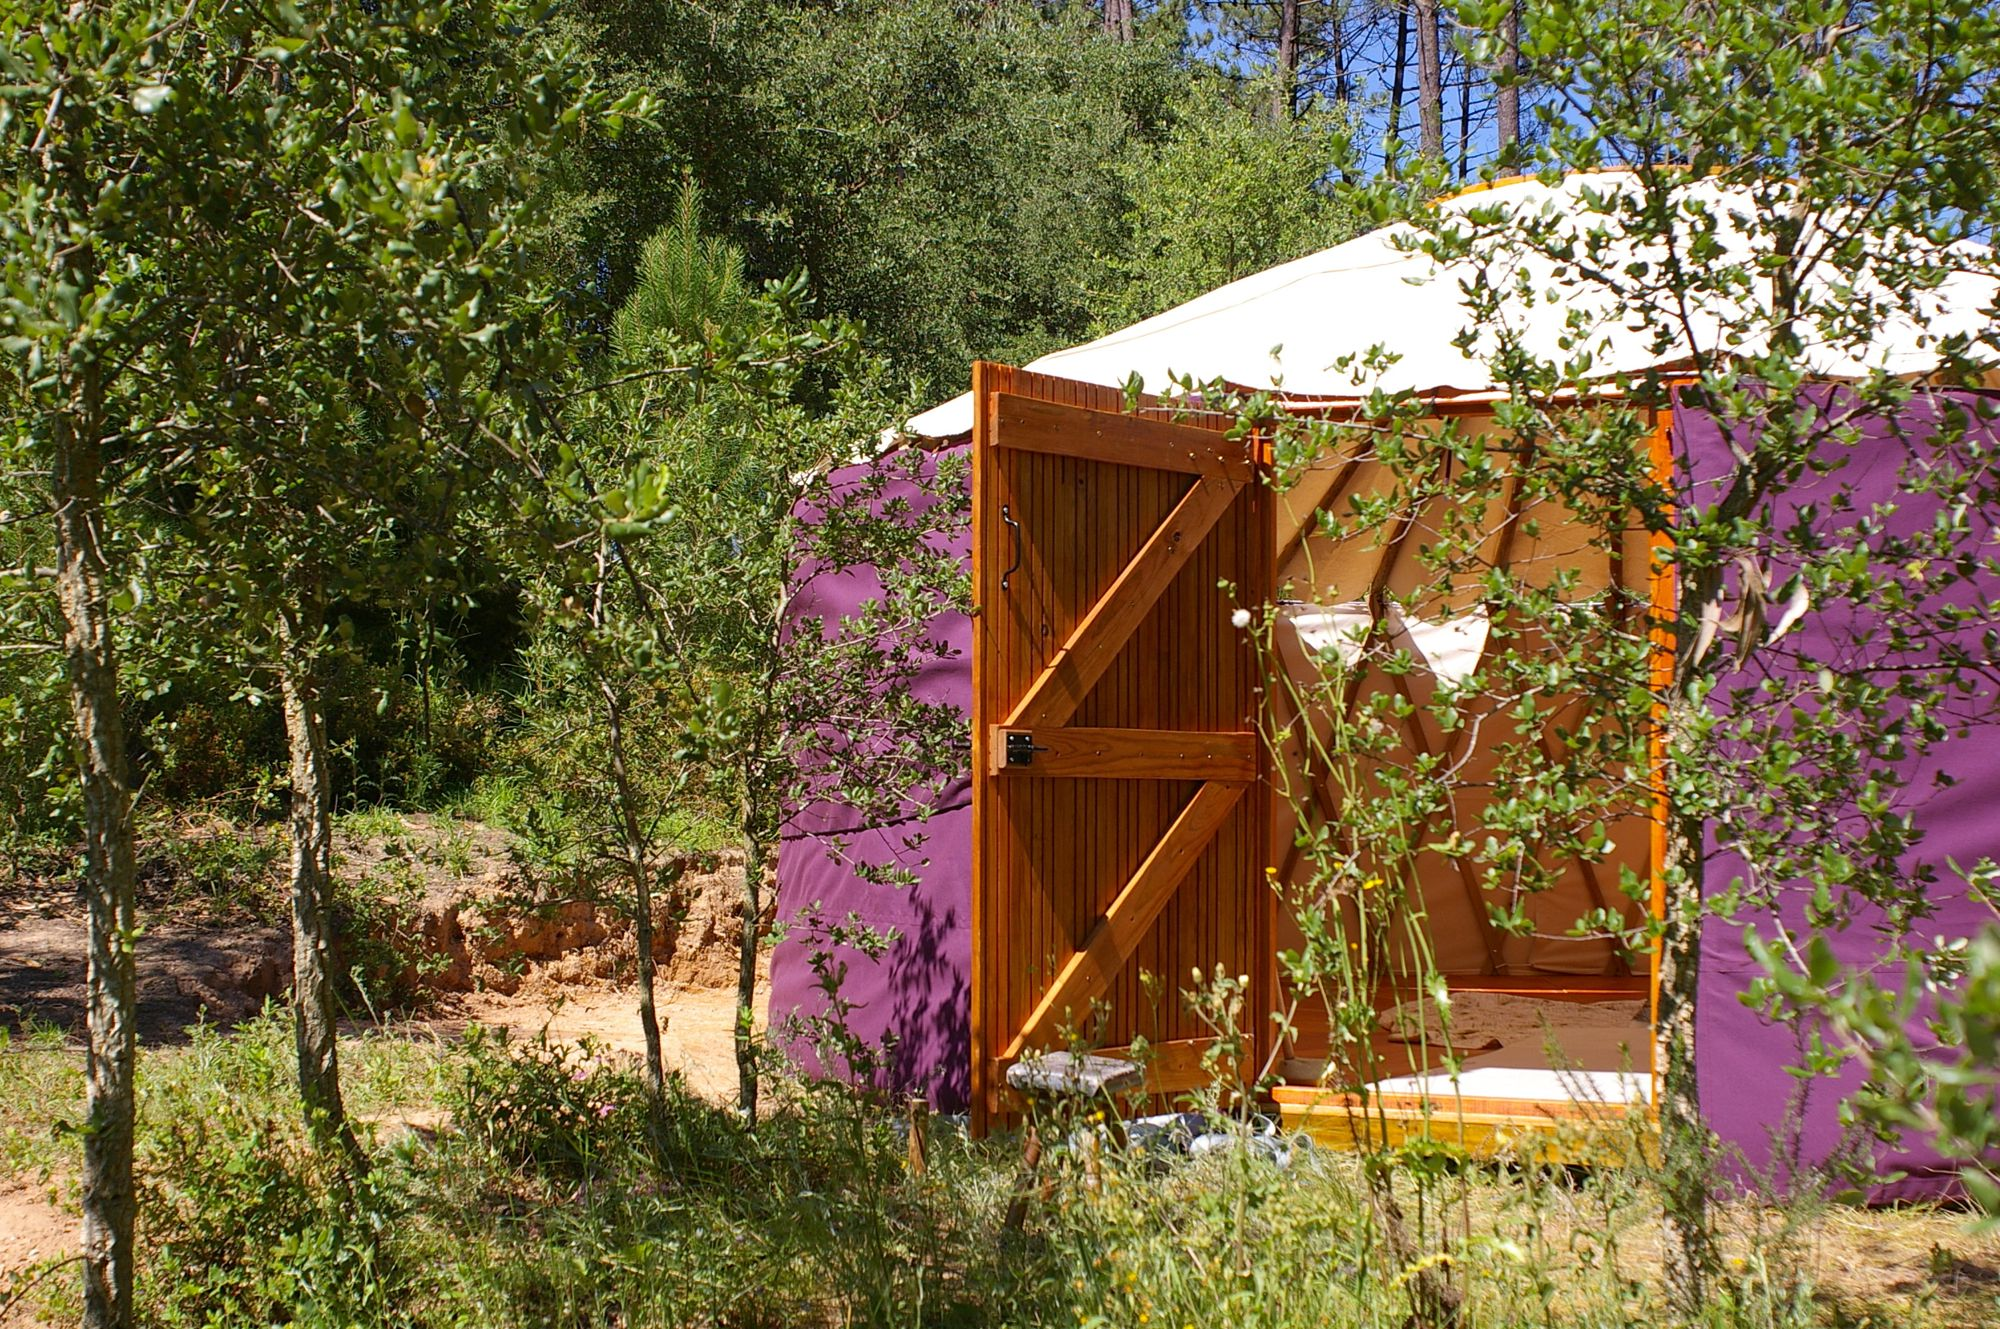 Glamping in Portugal holidays at Cool Camping